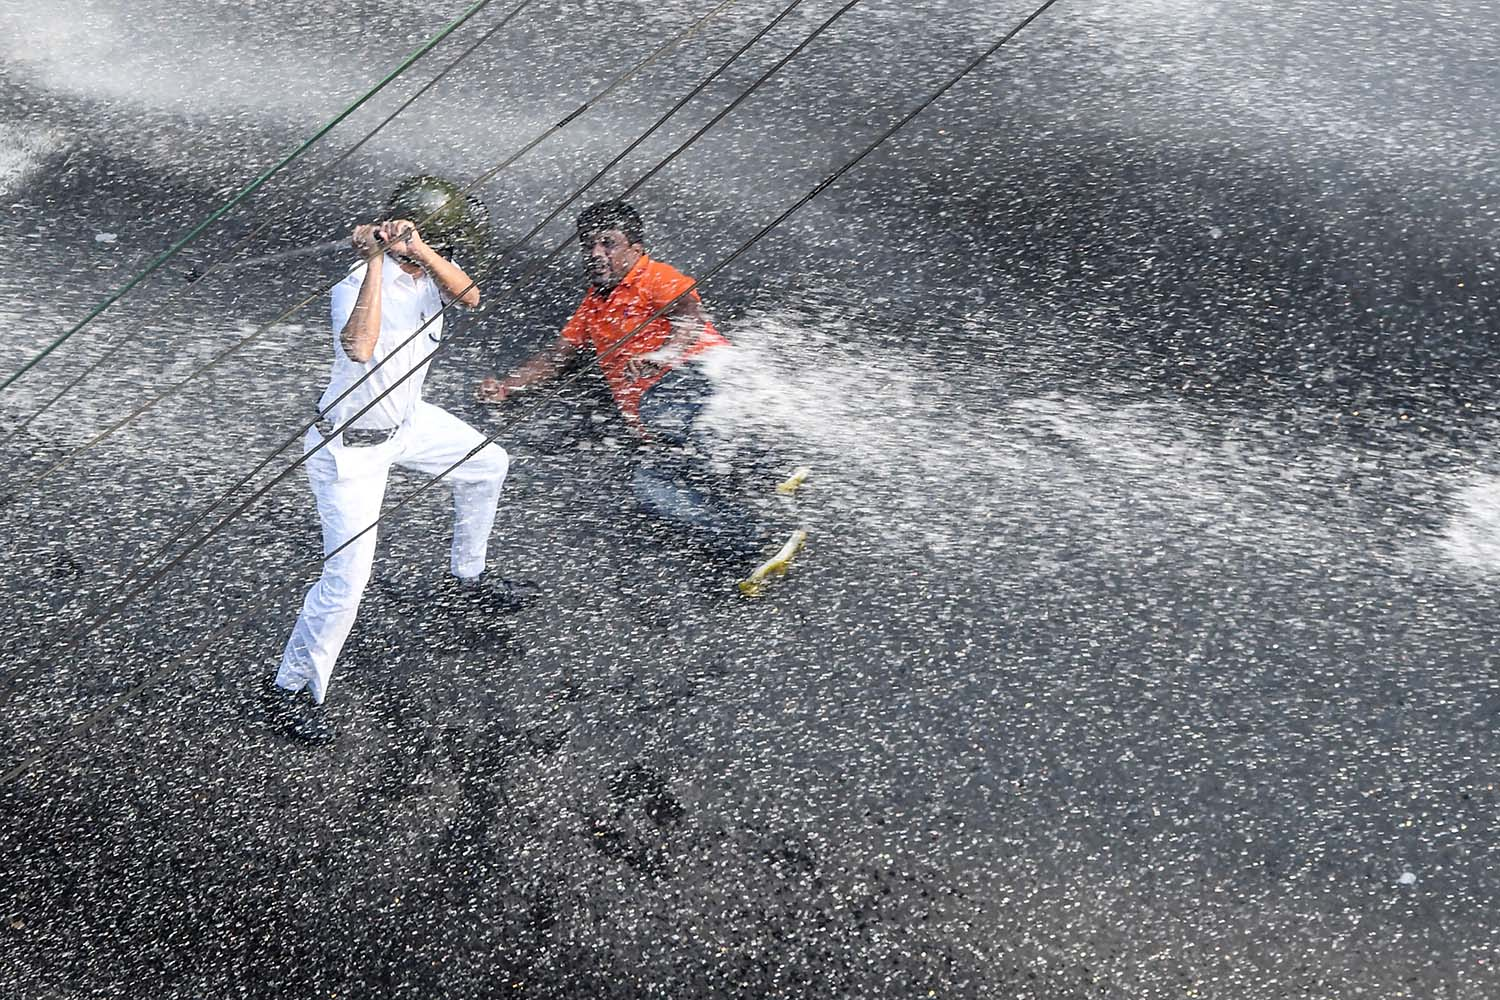 A police officer charges a Bharatiya Janata Part protester with a baton as police fire a water cannon during a protest against the Trinamool Congress-led state government in Kolkata, India, on Nov. 13.  DIBYANGSHU SARKAR/AFP via Getty Images